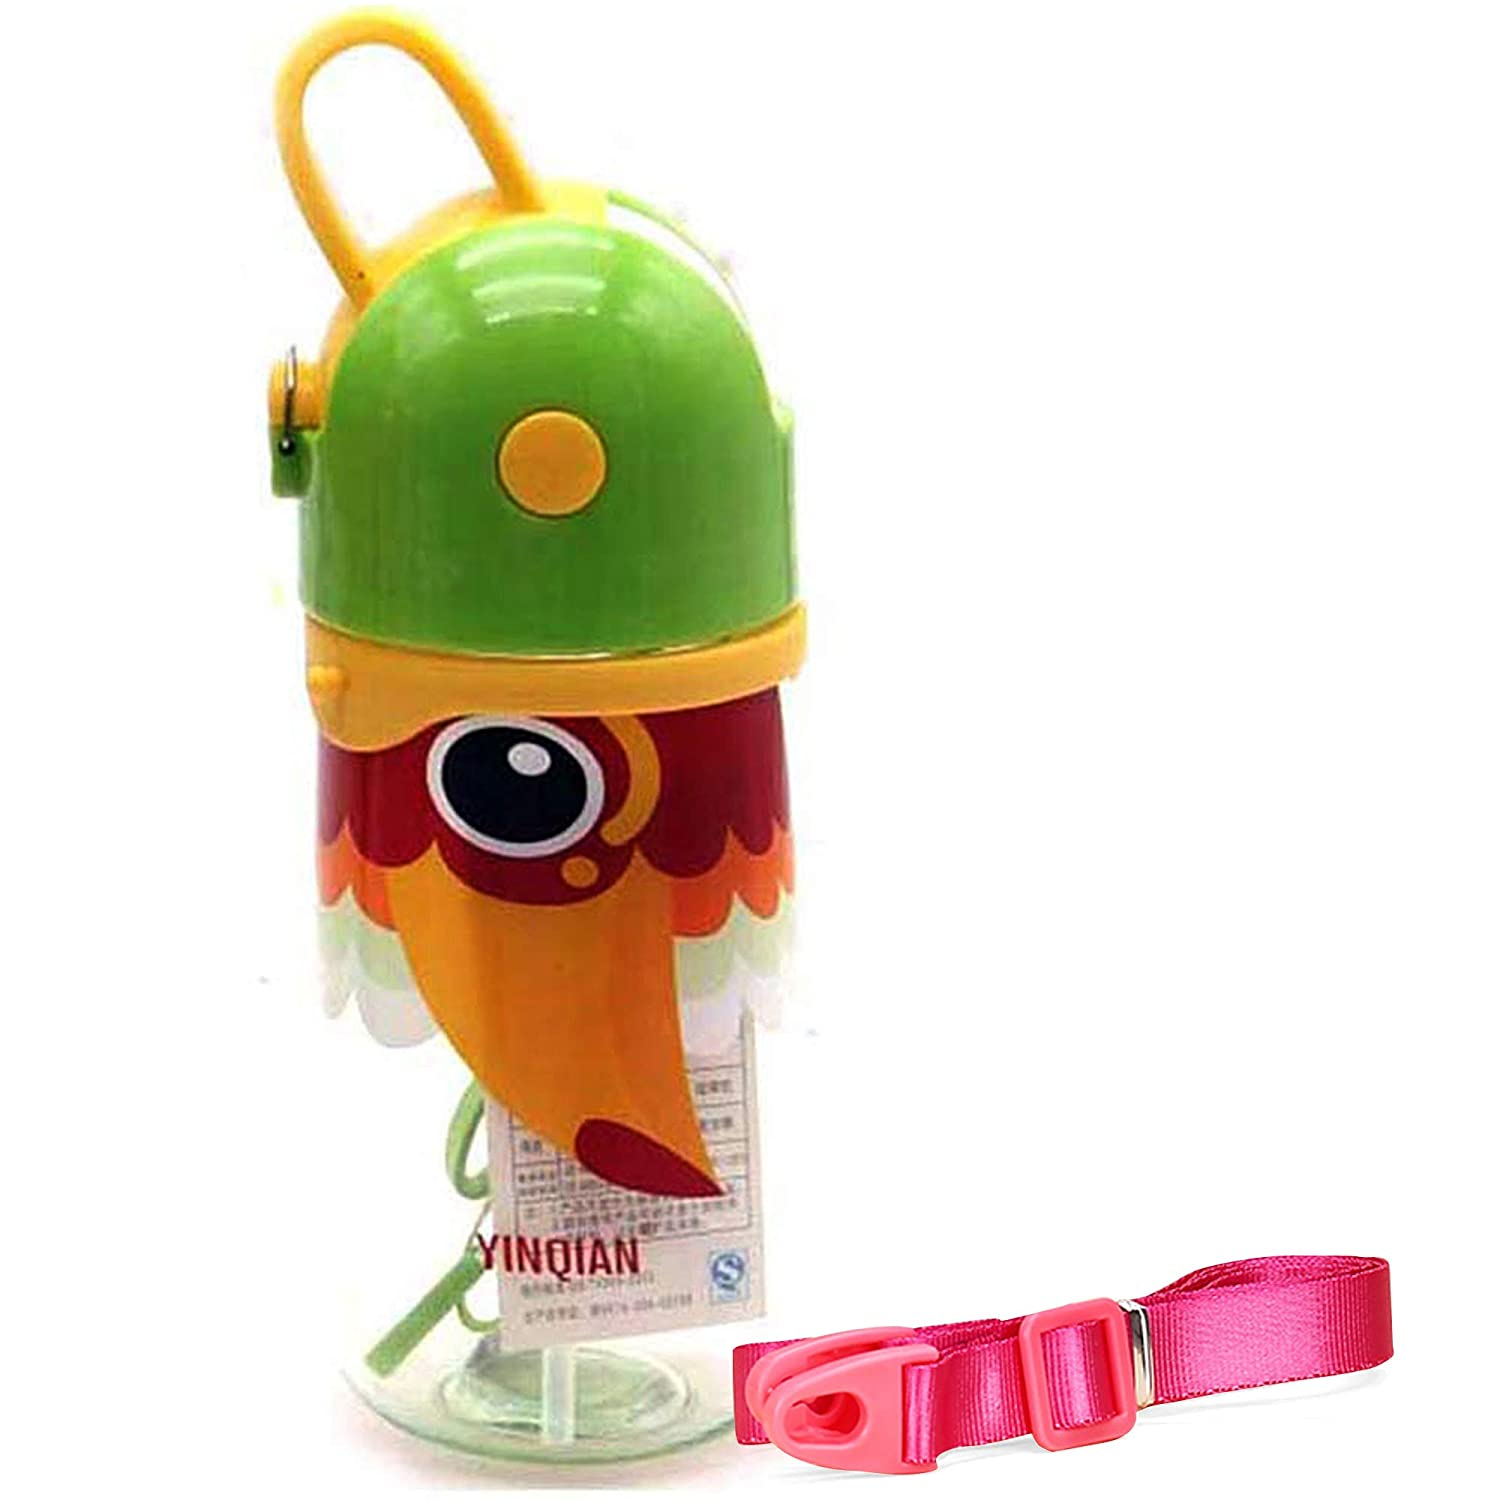 TIED RIBBONS High Quality Water Bottle with Straw for School